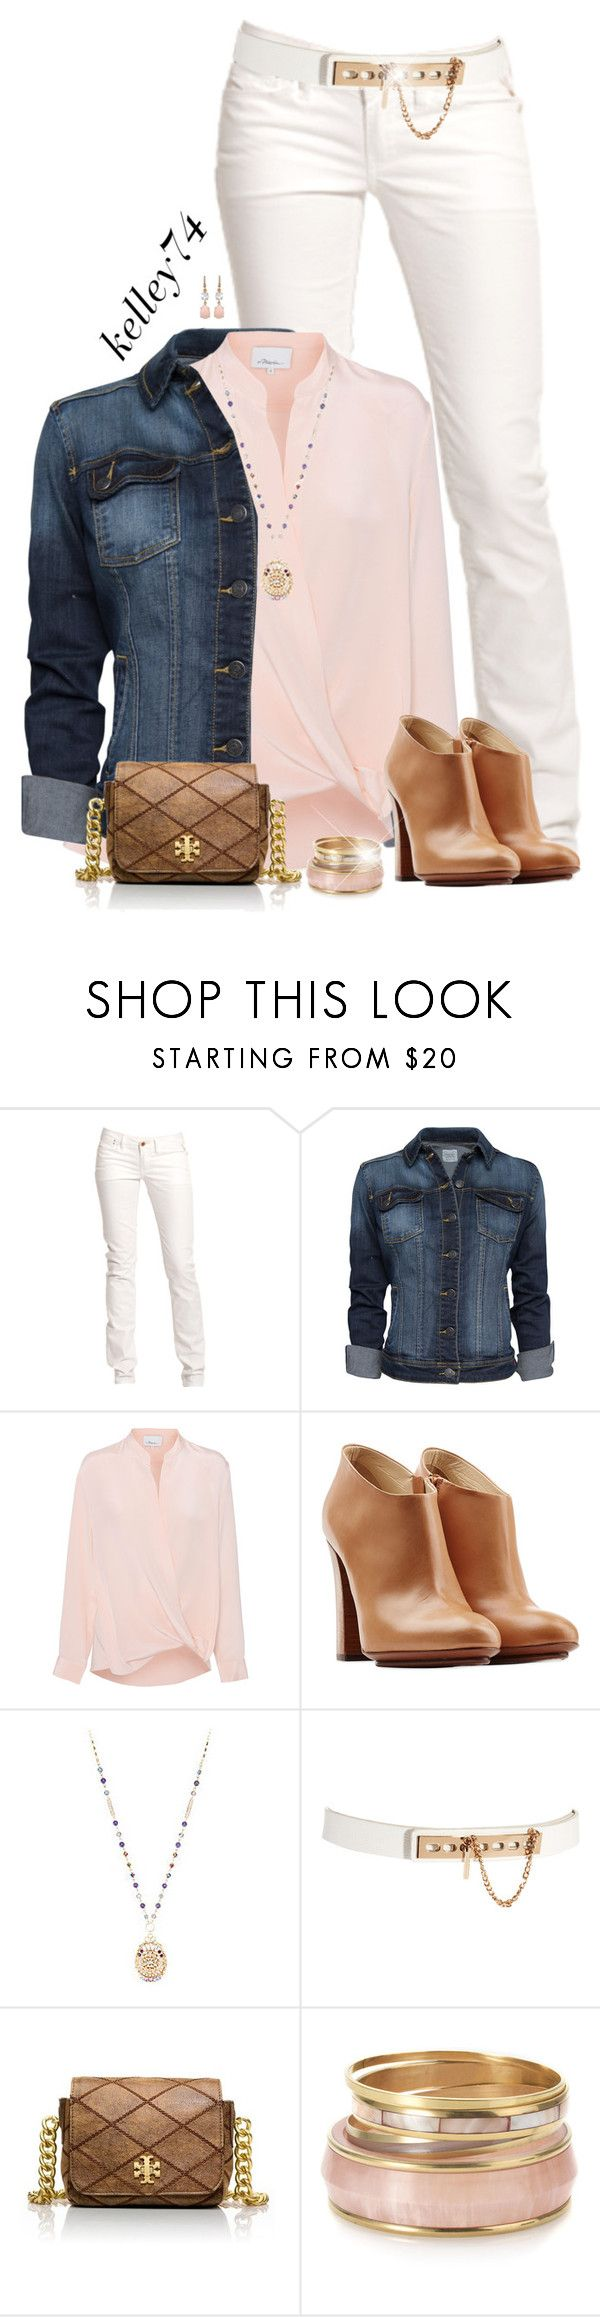 """""""Denim jacket & ankle boots"""" by kelley74 ❤ liked on Polyvore featuring Replay, MANGO, 3.1 Phillip Lim, L'Autre Chose, Lane Bryant, ASOS, Tory Burch, Monsoon and Irene Neuwirth"""